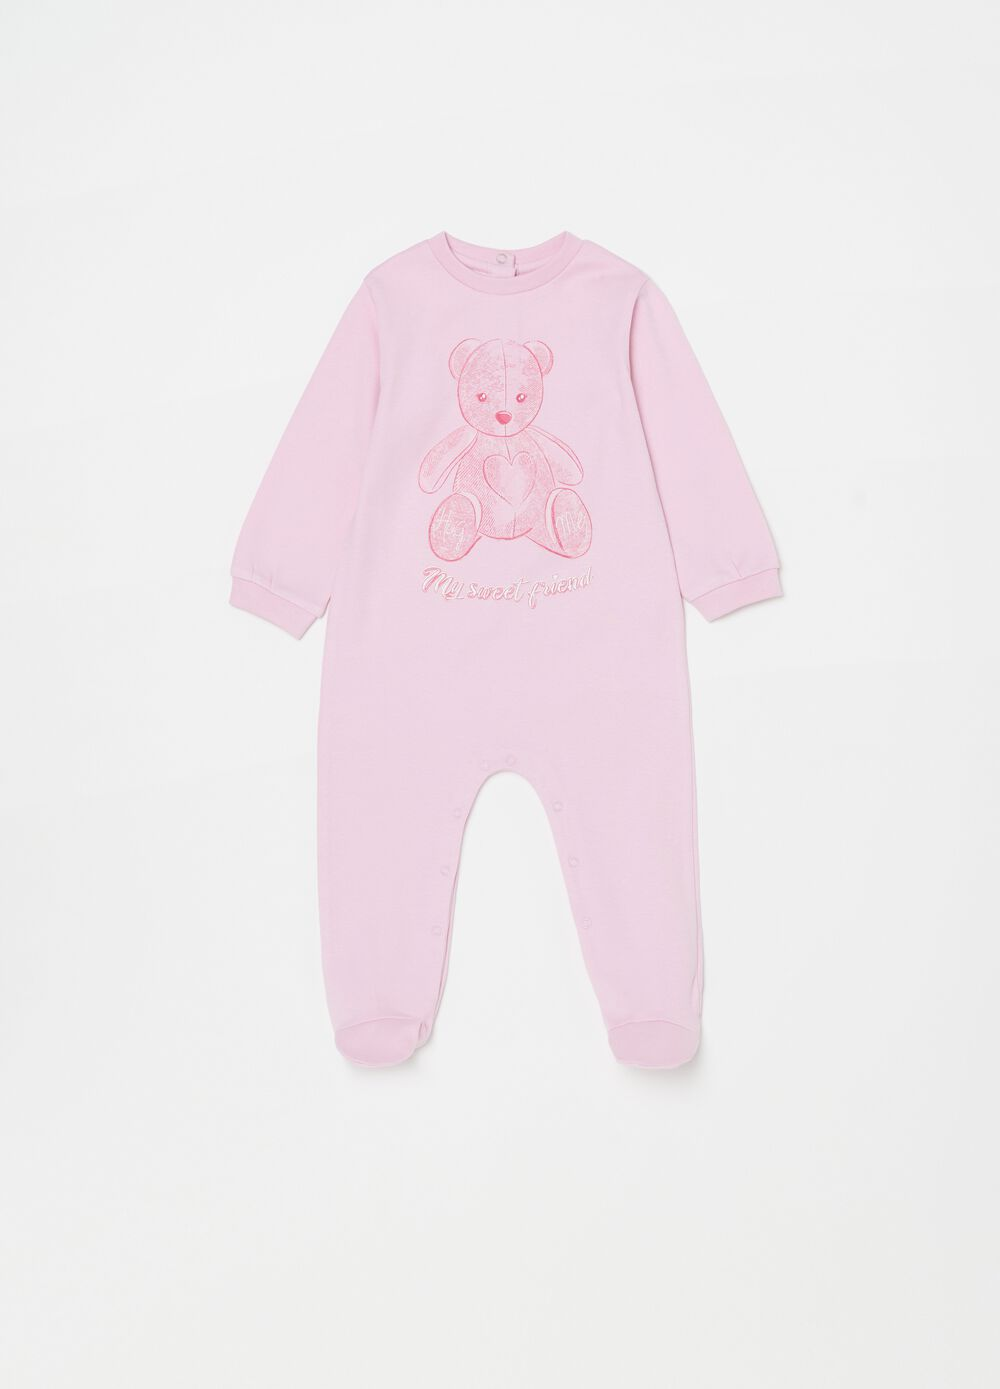 100% organic cotton onesie with feet